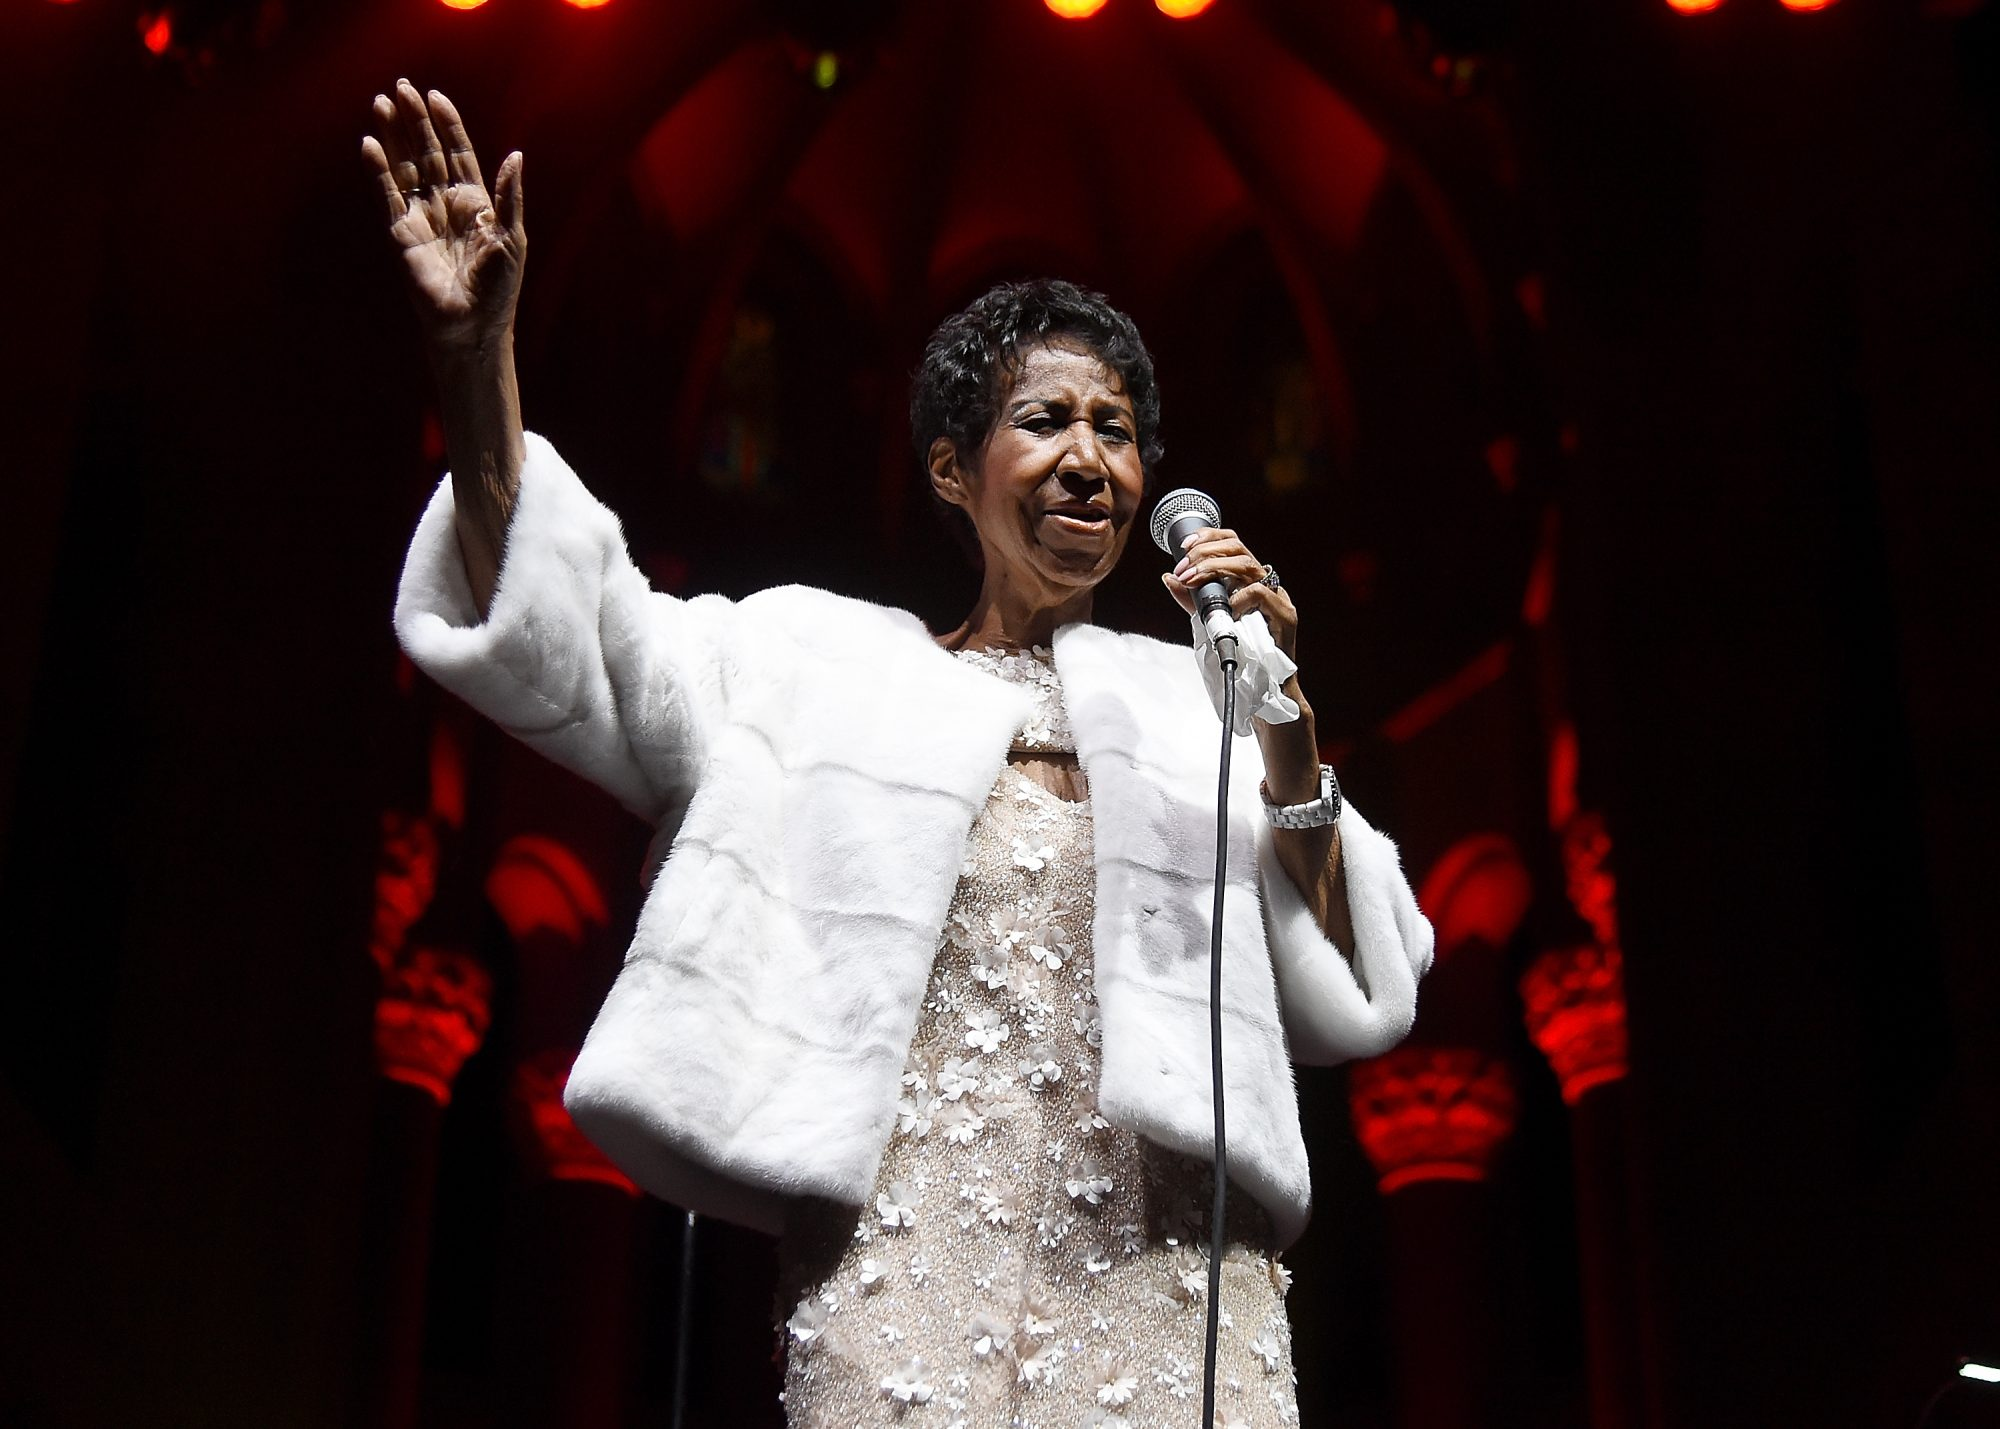 Aretha Franklin's Death Is 'Imminent' as Source Confirms 'She Has Been Ill for a Long Time'